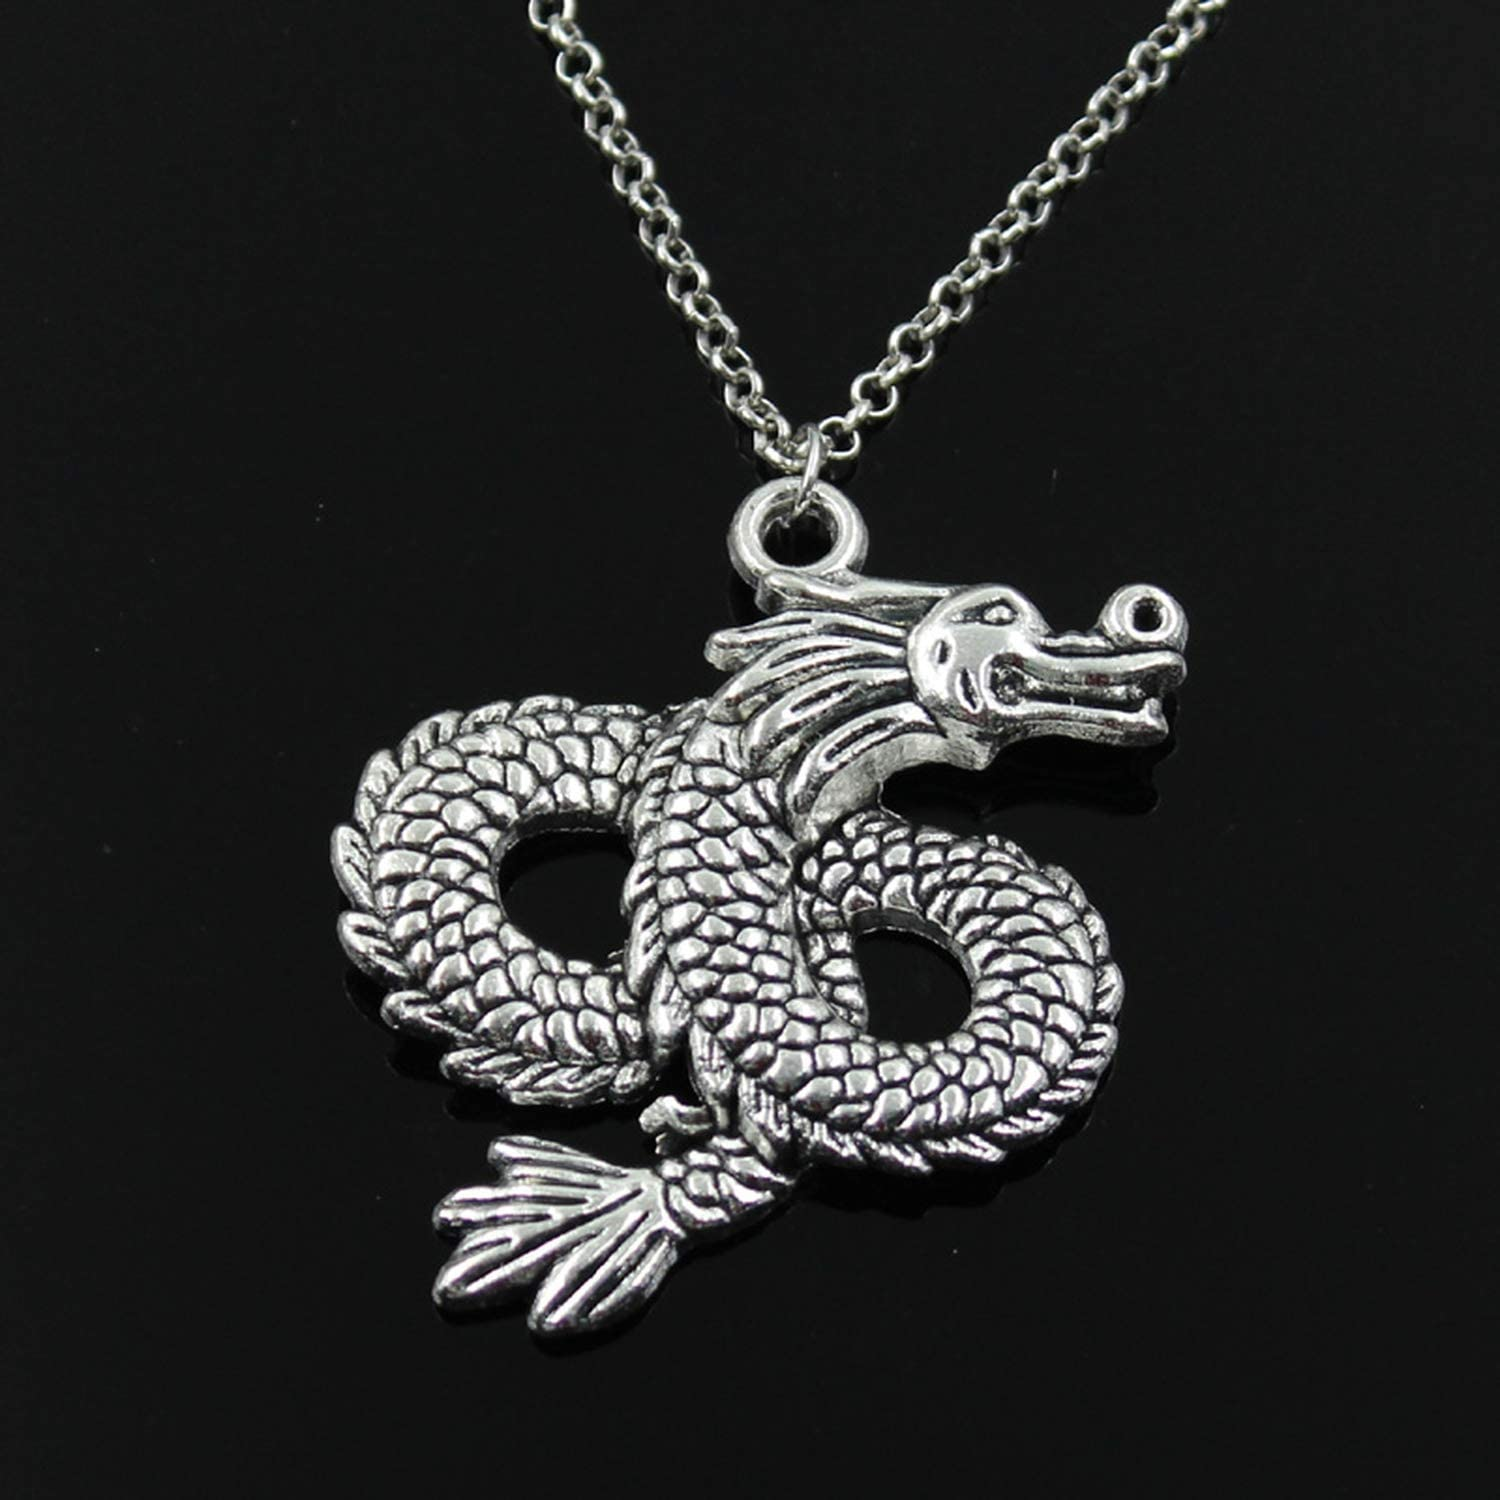 Fairy1 Fashion Loong Dragon Pendants Round Cross Chain Short Long Mens Womens Silver Necklace Jewelry Gift,Round Chain,50cm Length